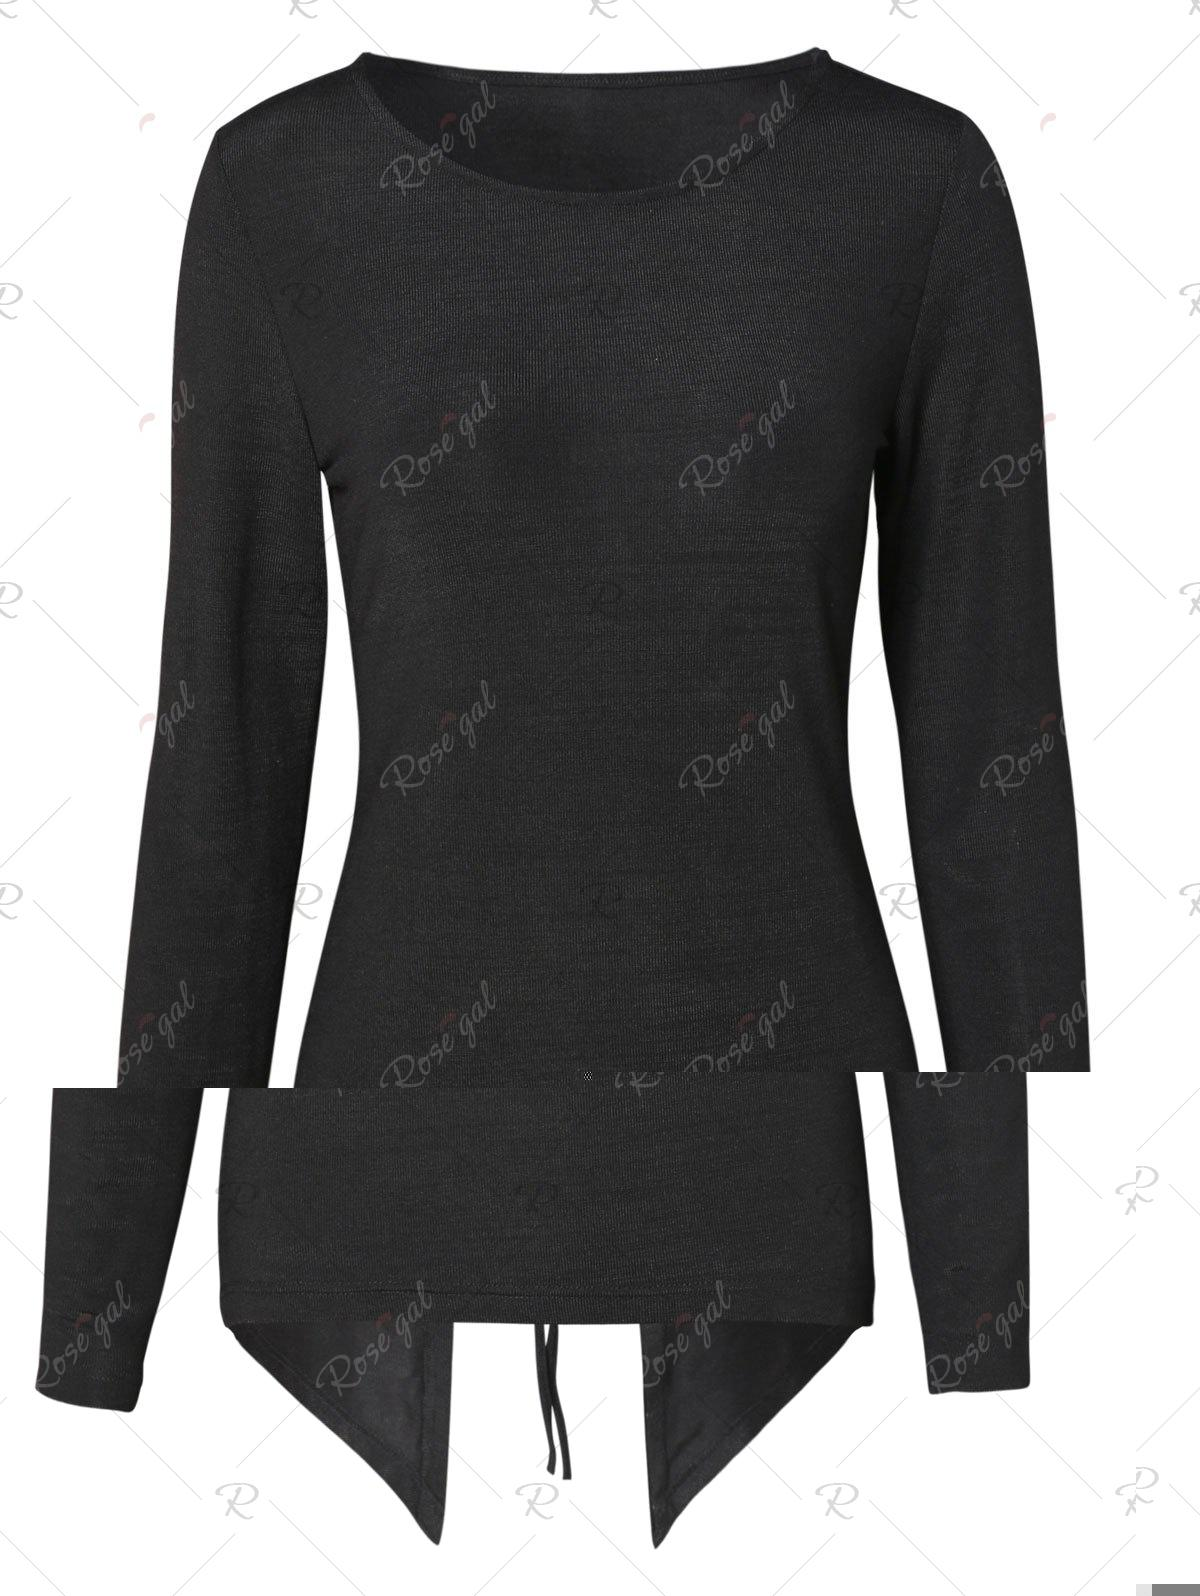 Affordable Lace Up Back High Low Knitwear